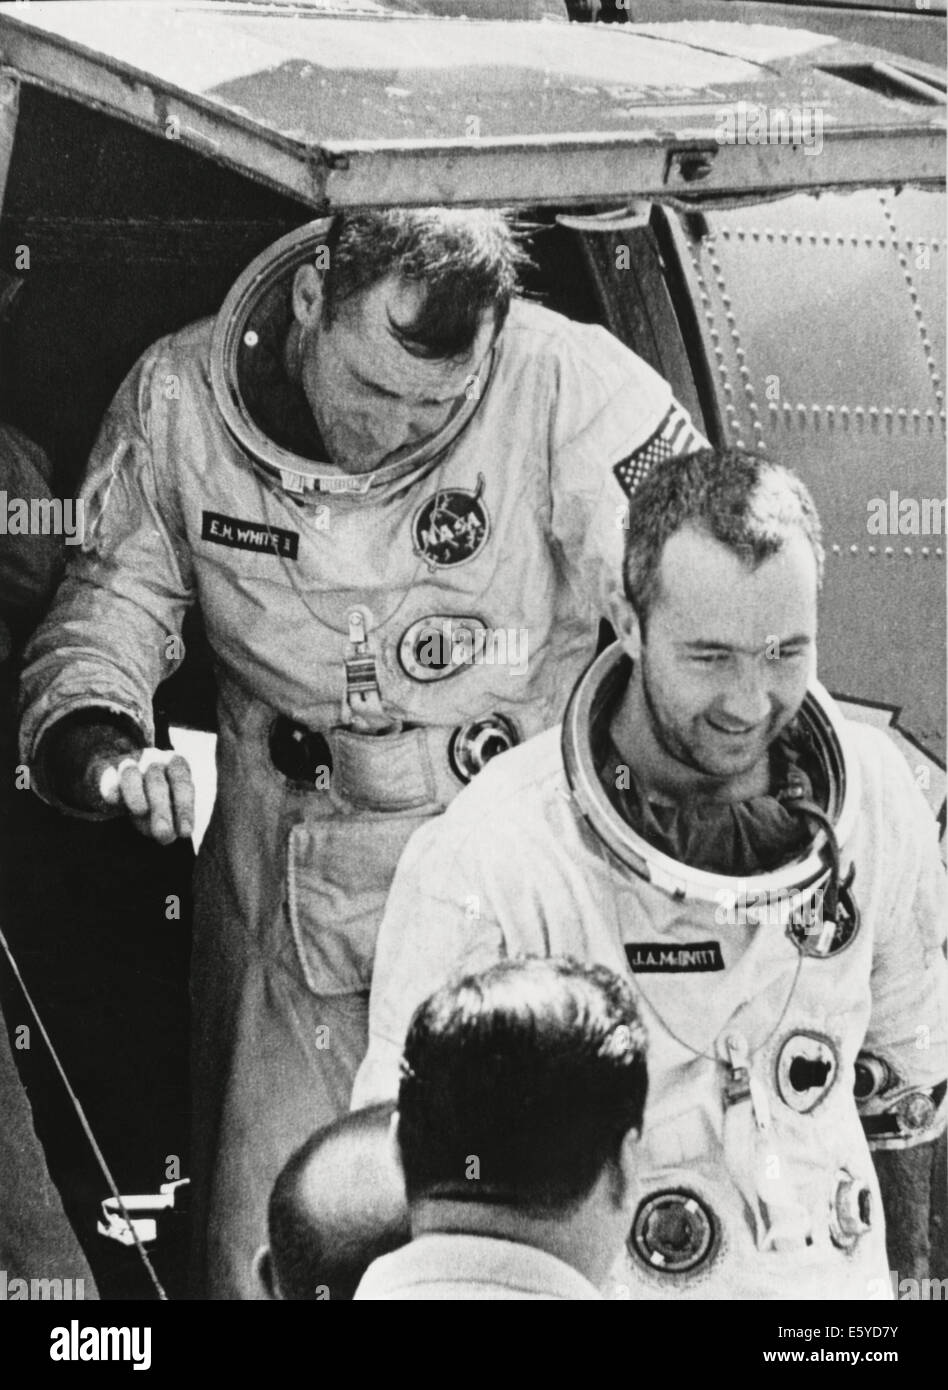 NASA Astronauts James McDivitt (front) and Edward White II after Completion of Gemini IV Space Mission, June 7, - Stock Image